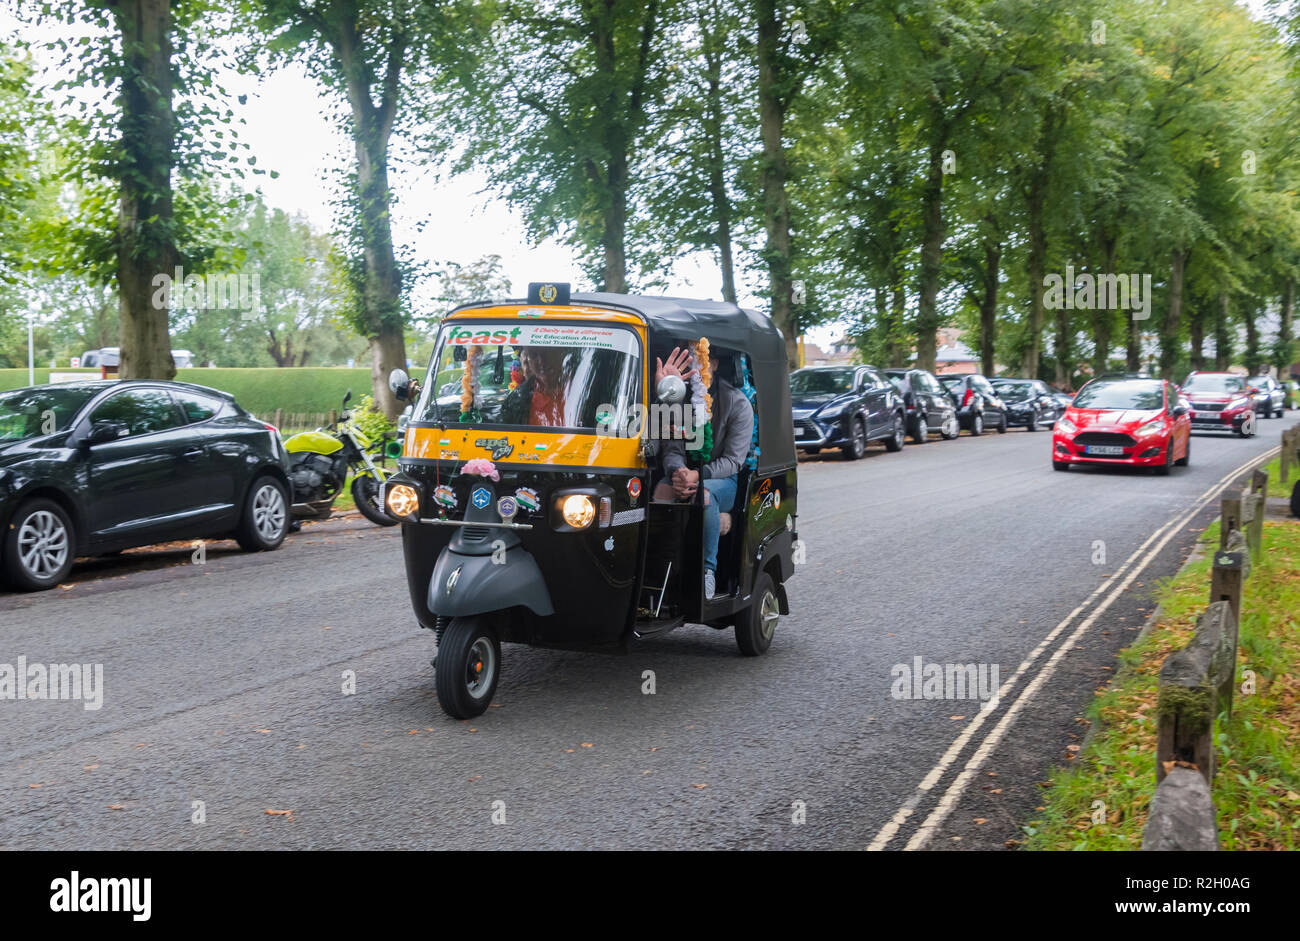 People having a tour in a Piaggio Ape City 3 wheeled cart (commonly known as a Tuk Tuk vehicle) from in Arundel, West Sussex, UK. - Stock Image